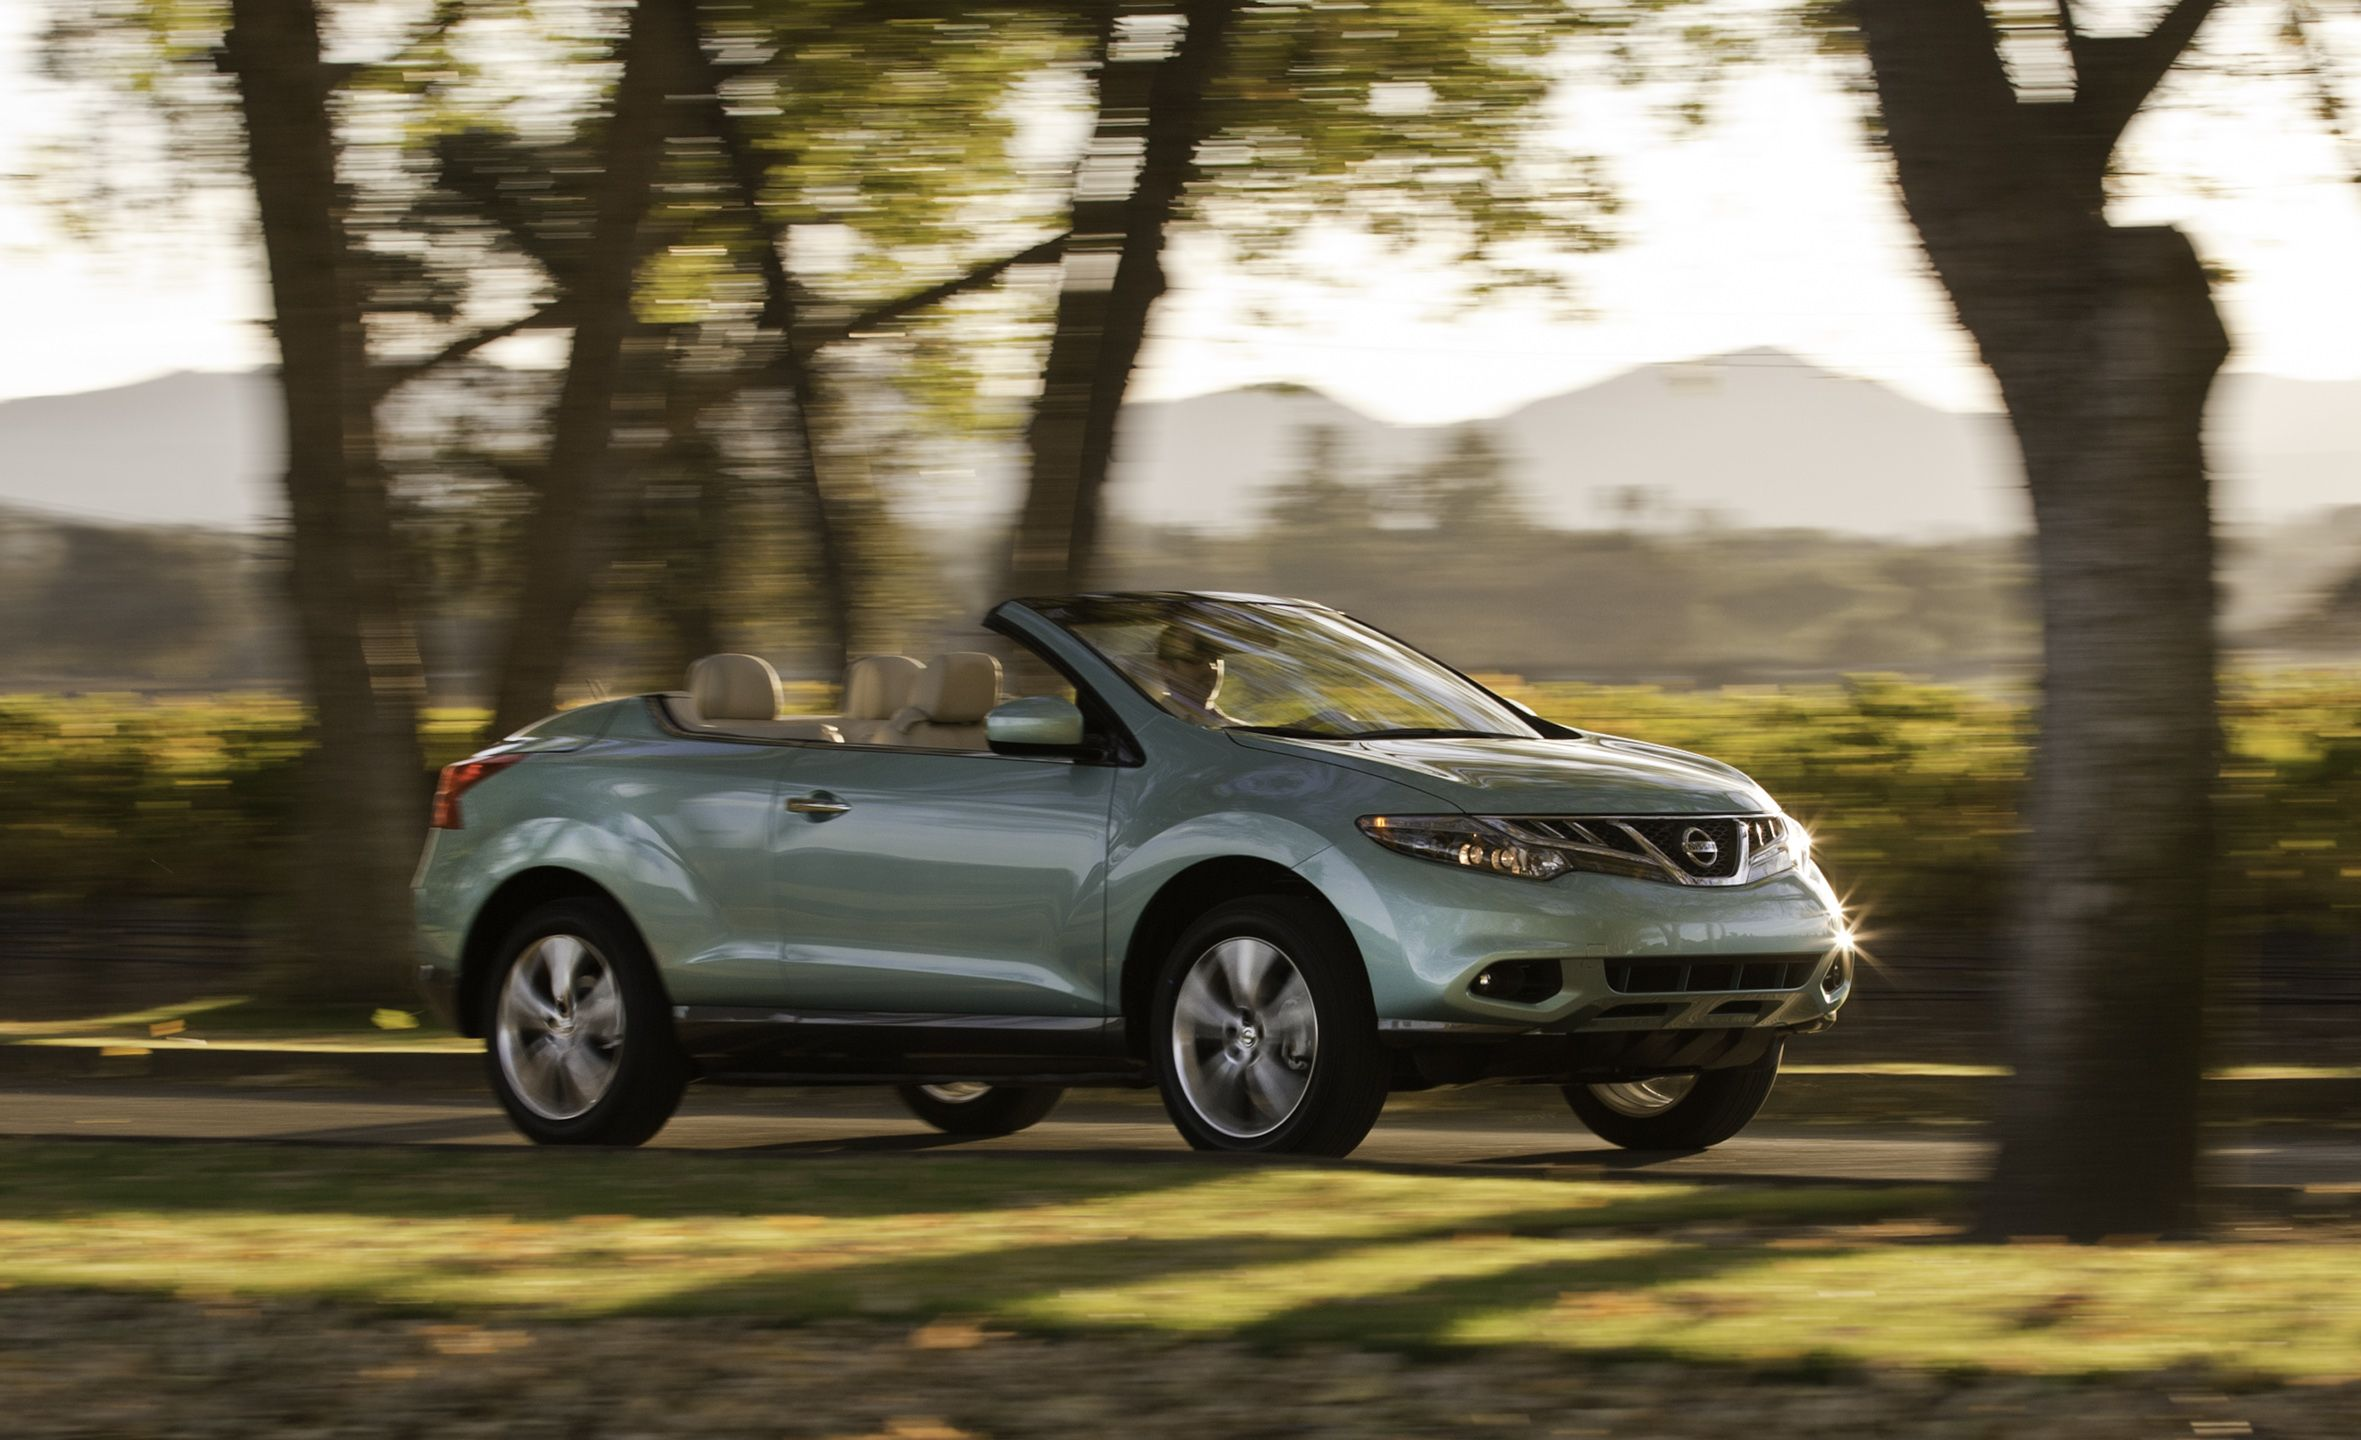 Nissan Murano CrossCabriolet (2011–2014) Allegedly, Nissan's now-former CEO Carlos Ghosn pushed the Murano CrossCabriolet into production because his wife liked the idea of it. Well, nobody (okay, almost nobody) else did.